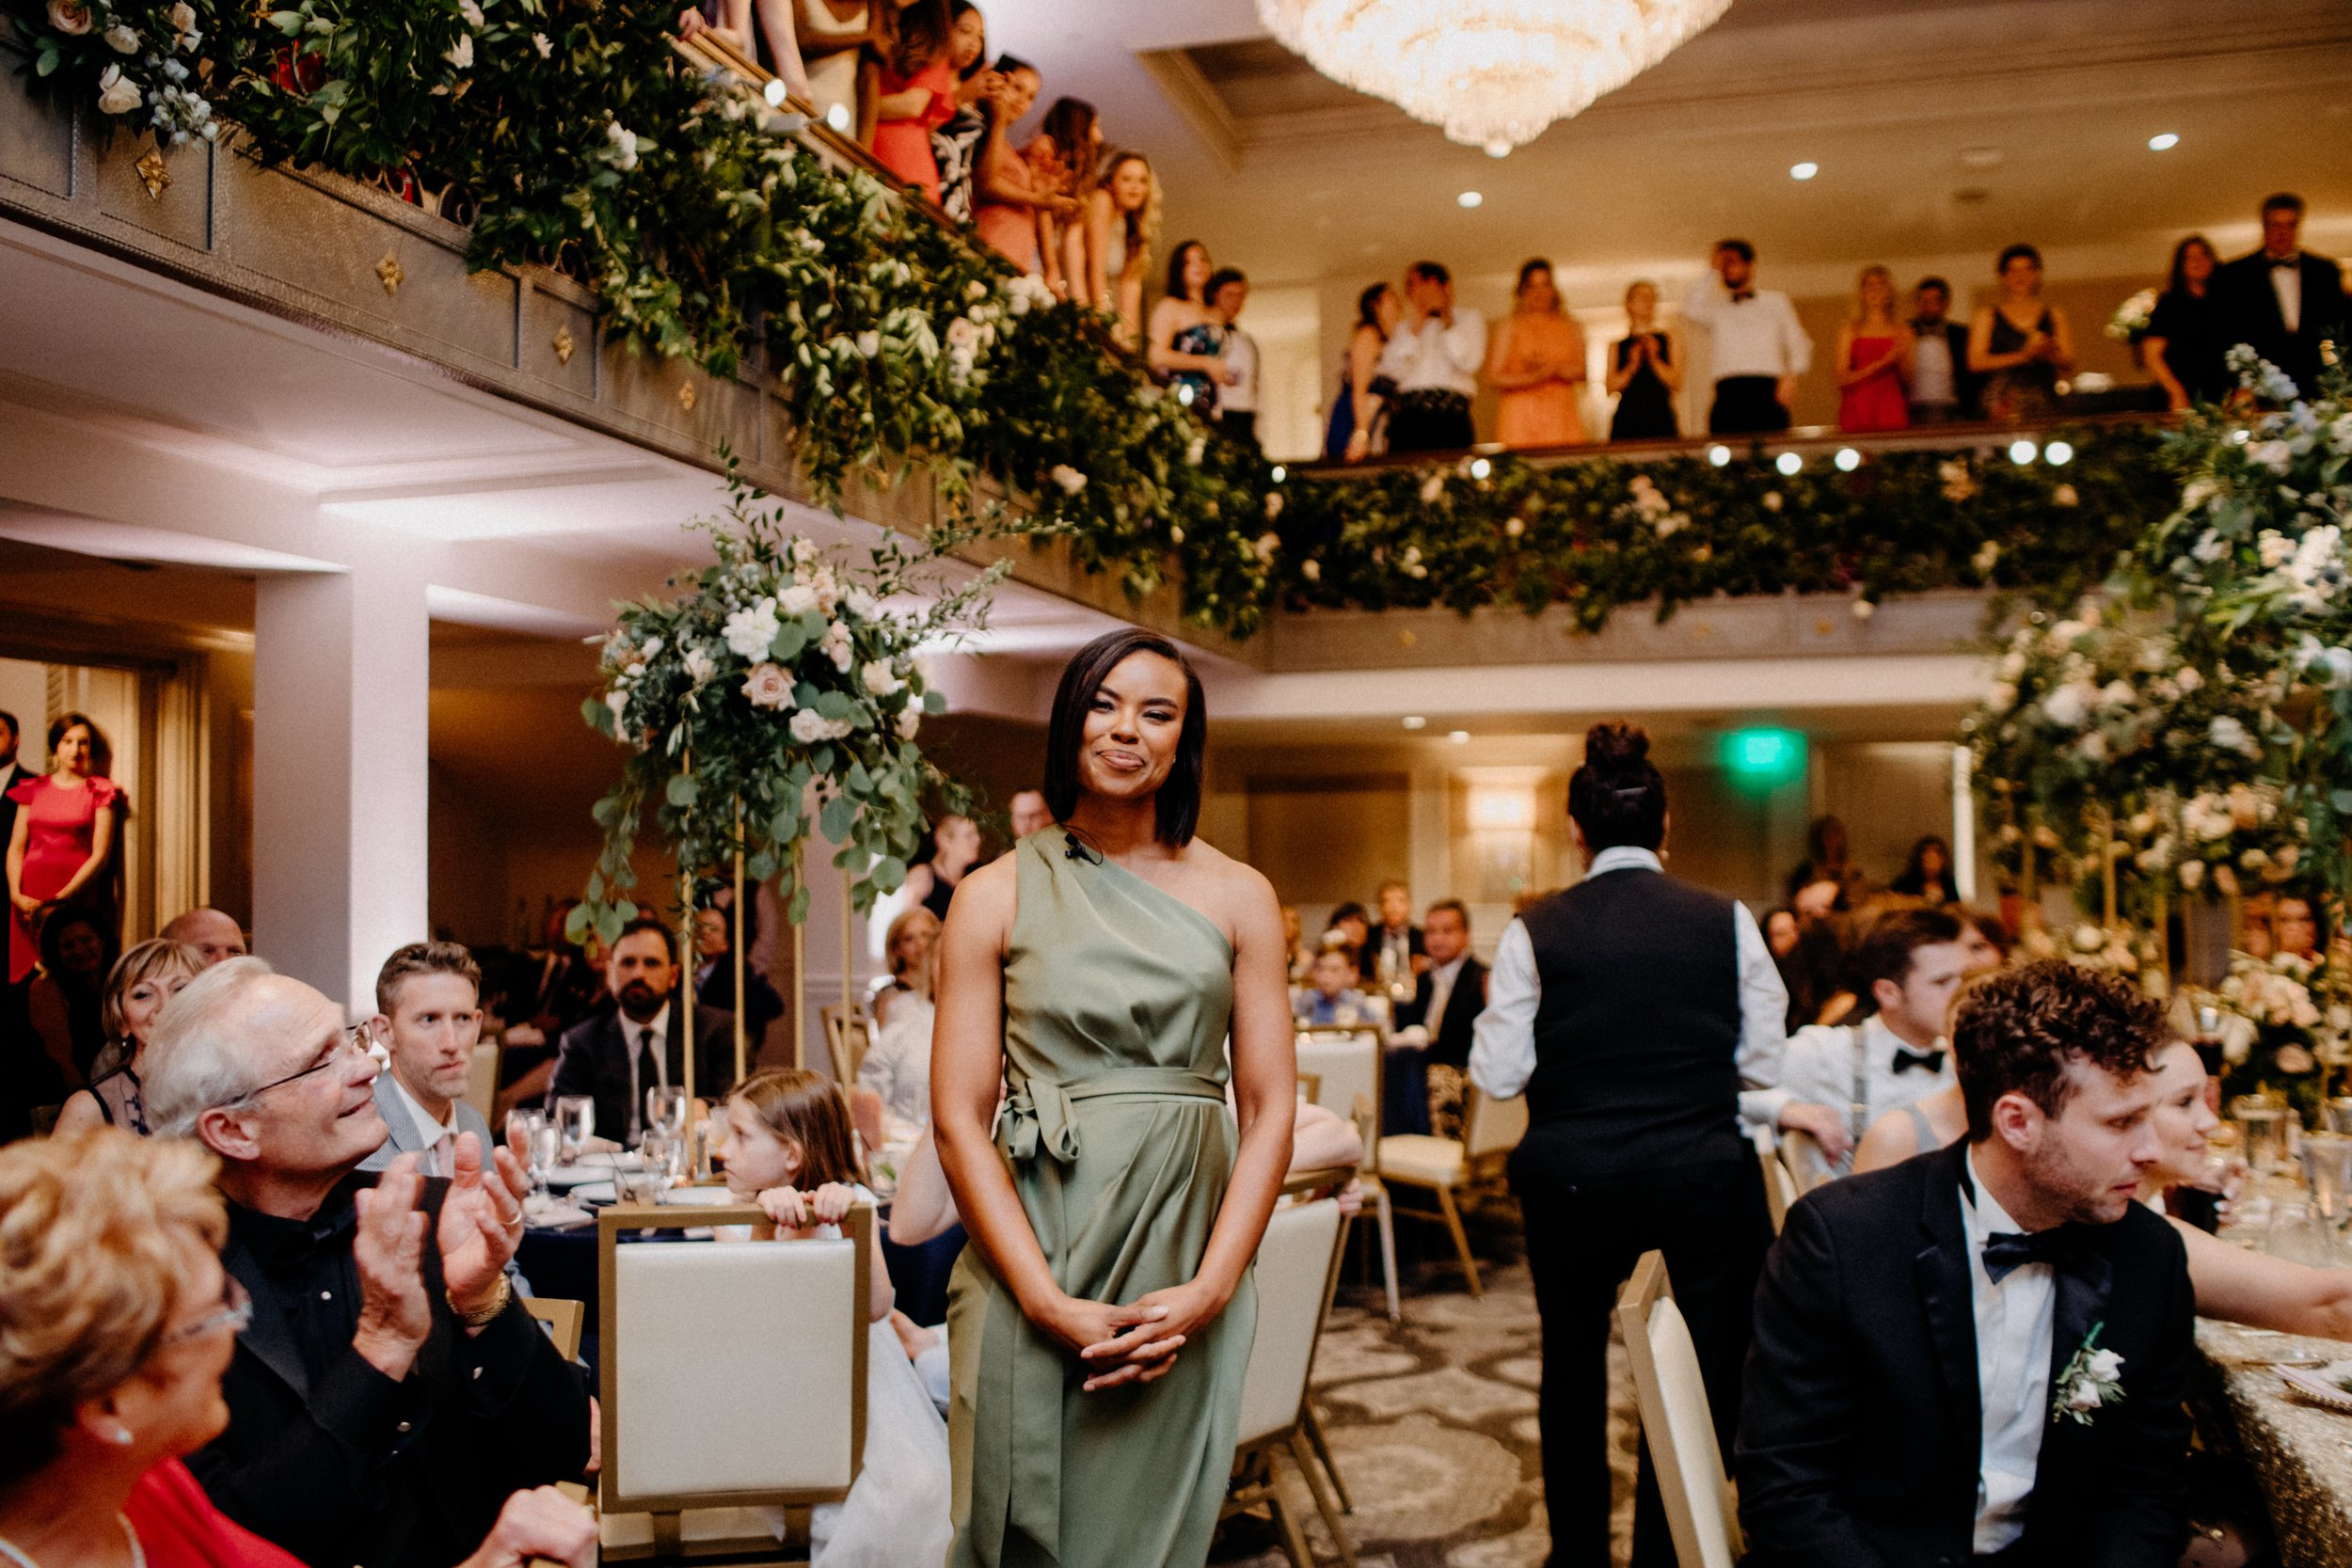 st-anthony-hotel-wedding-photography-10141san-antonio.JPG